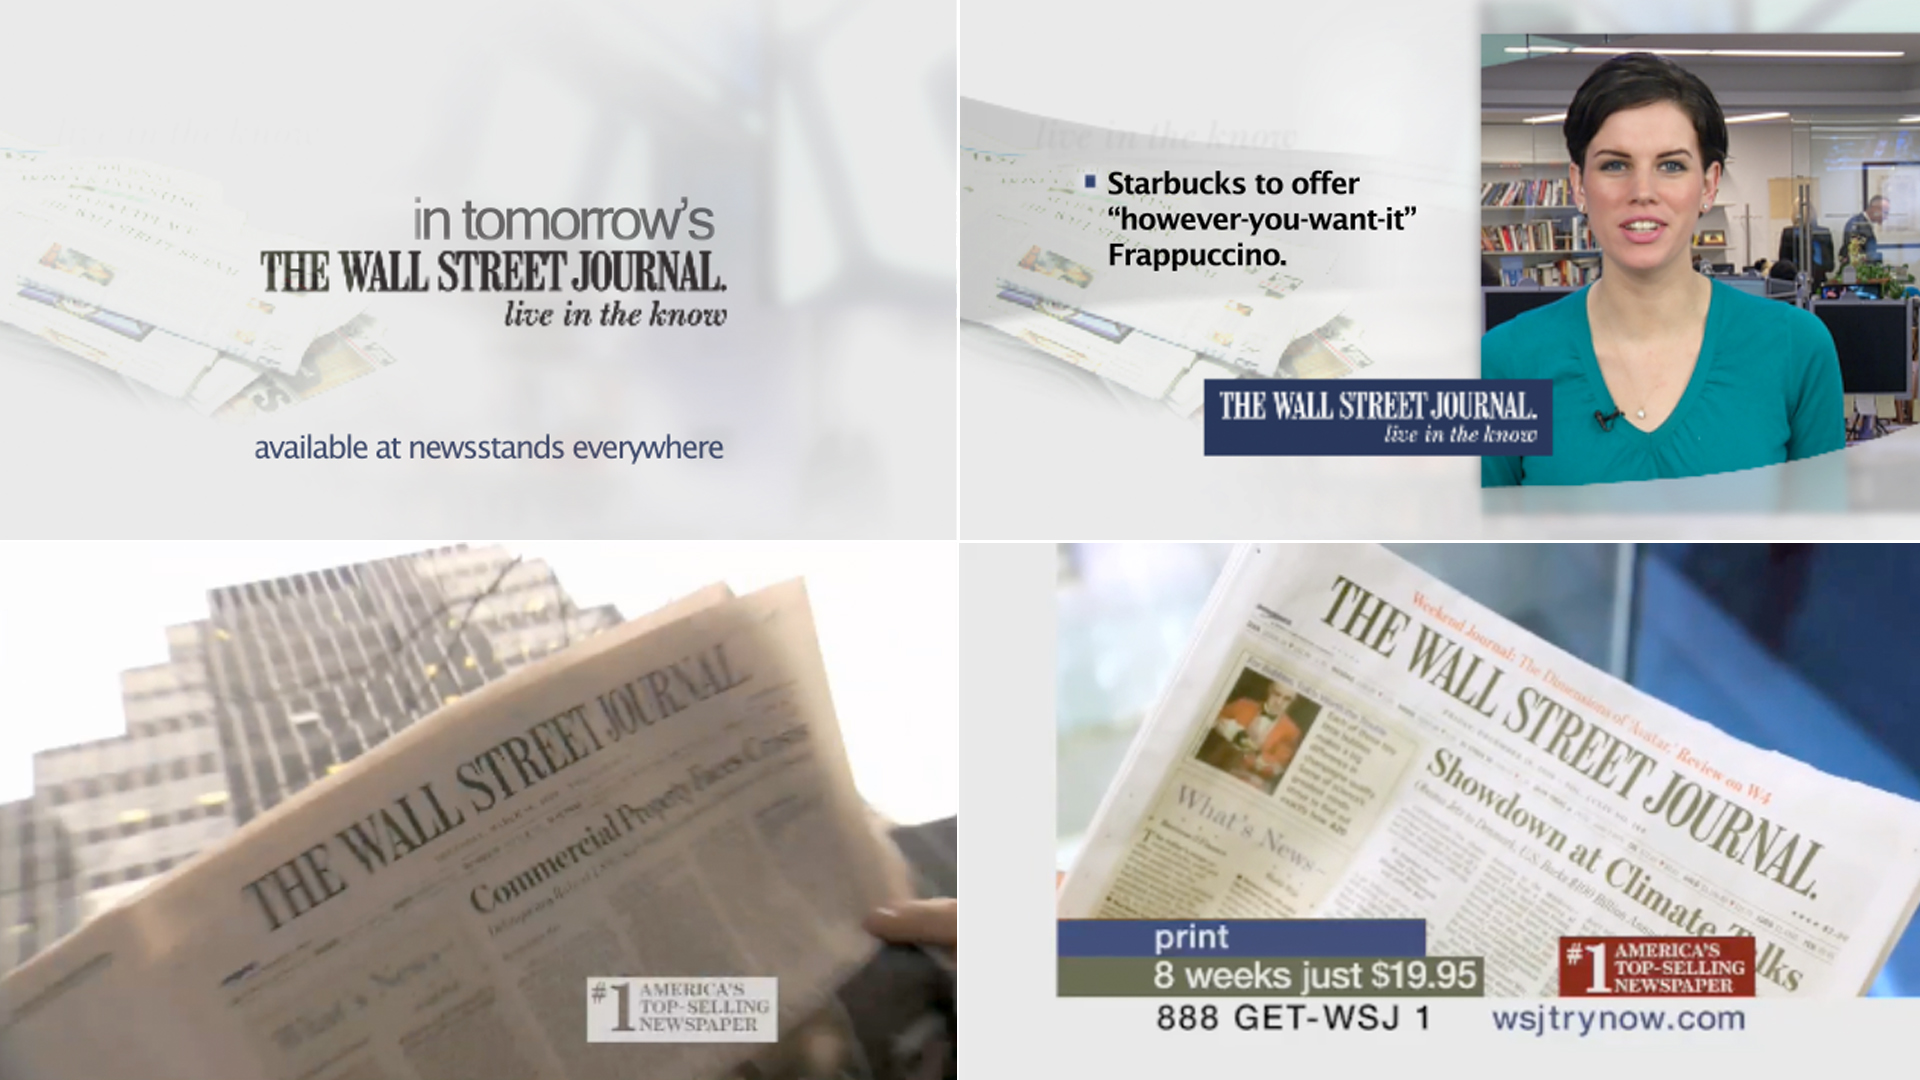 Commercial - In Tomorrow's Journal. The Wall Street Journal 2010.